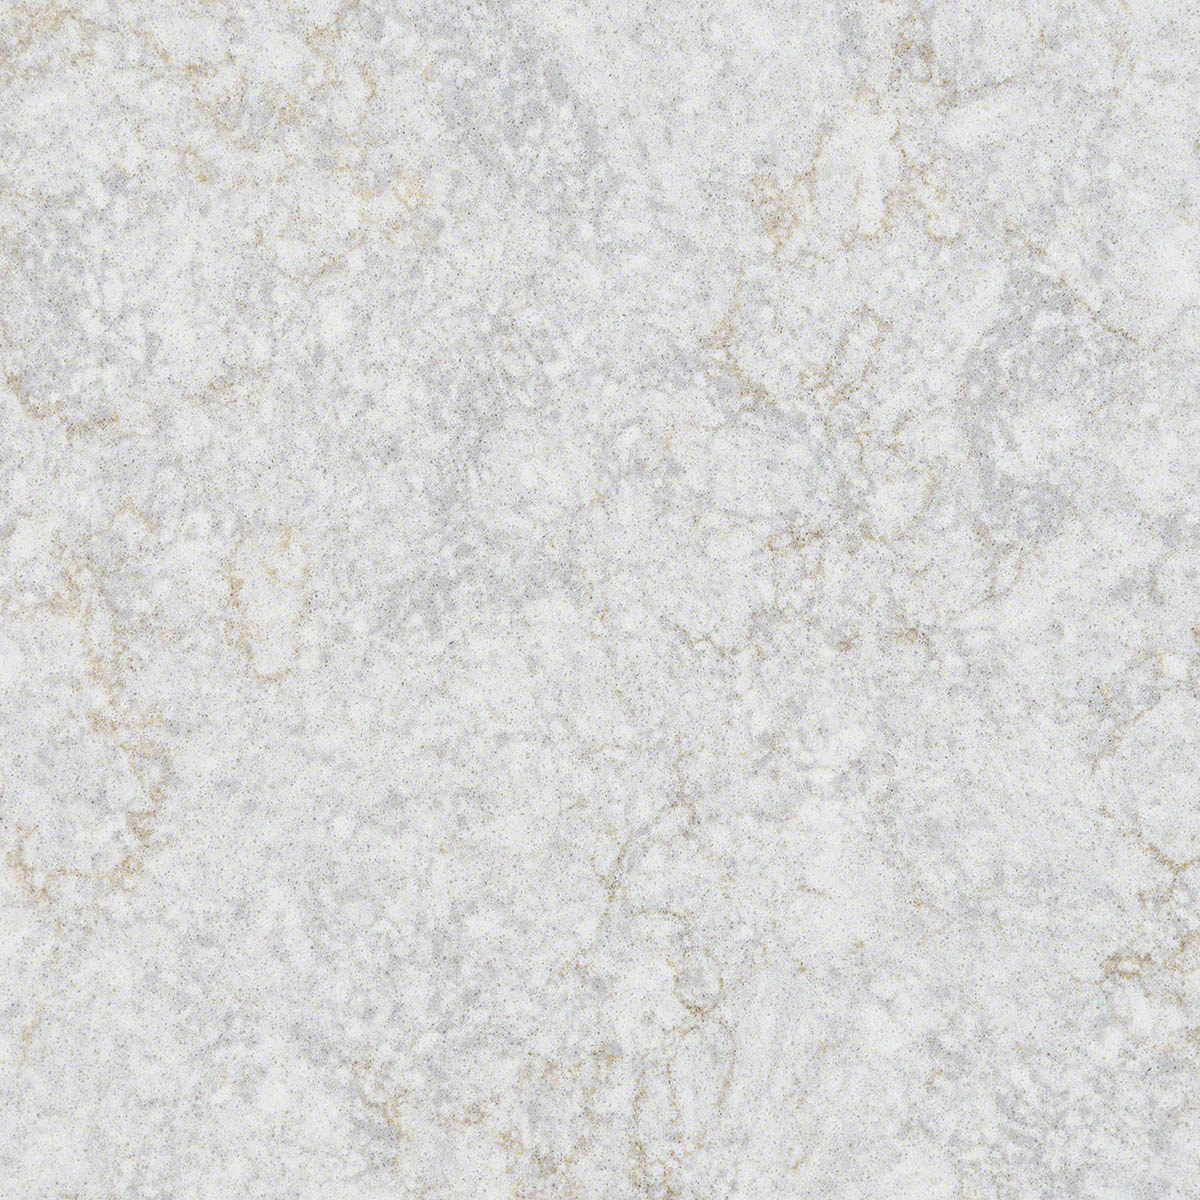 Msi Granite Slabs : Msi quartz gallery countertops vanity wentzville mo